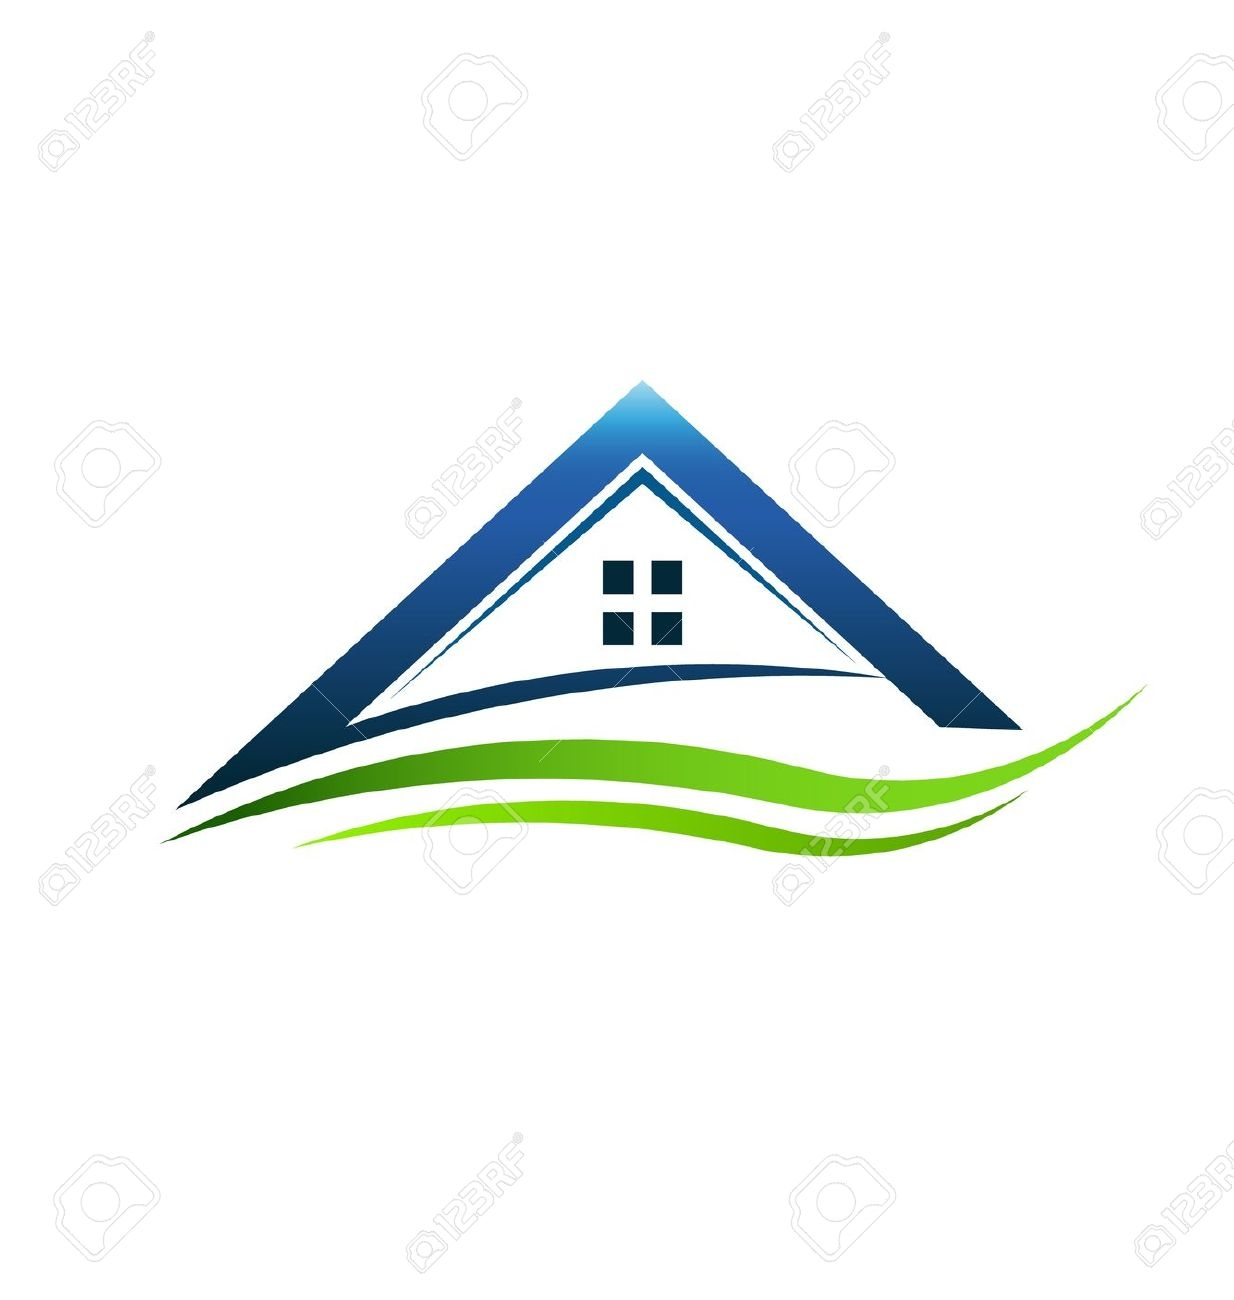 House Roof Clipart Clipground